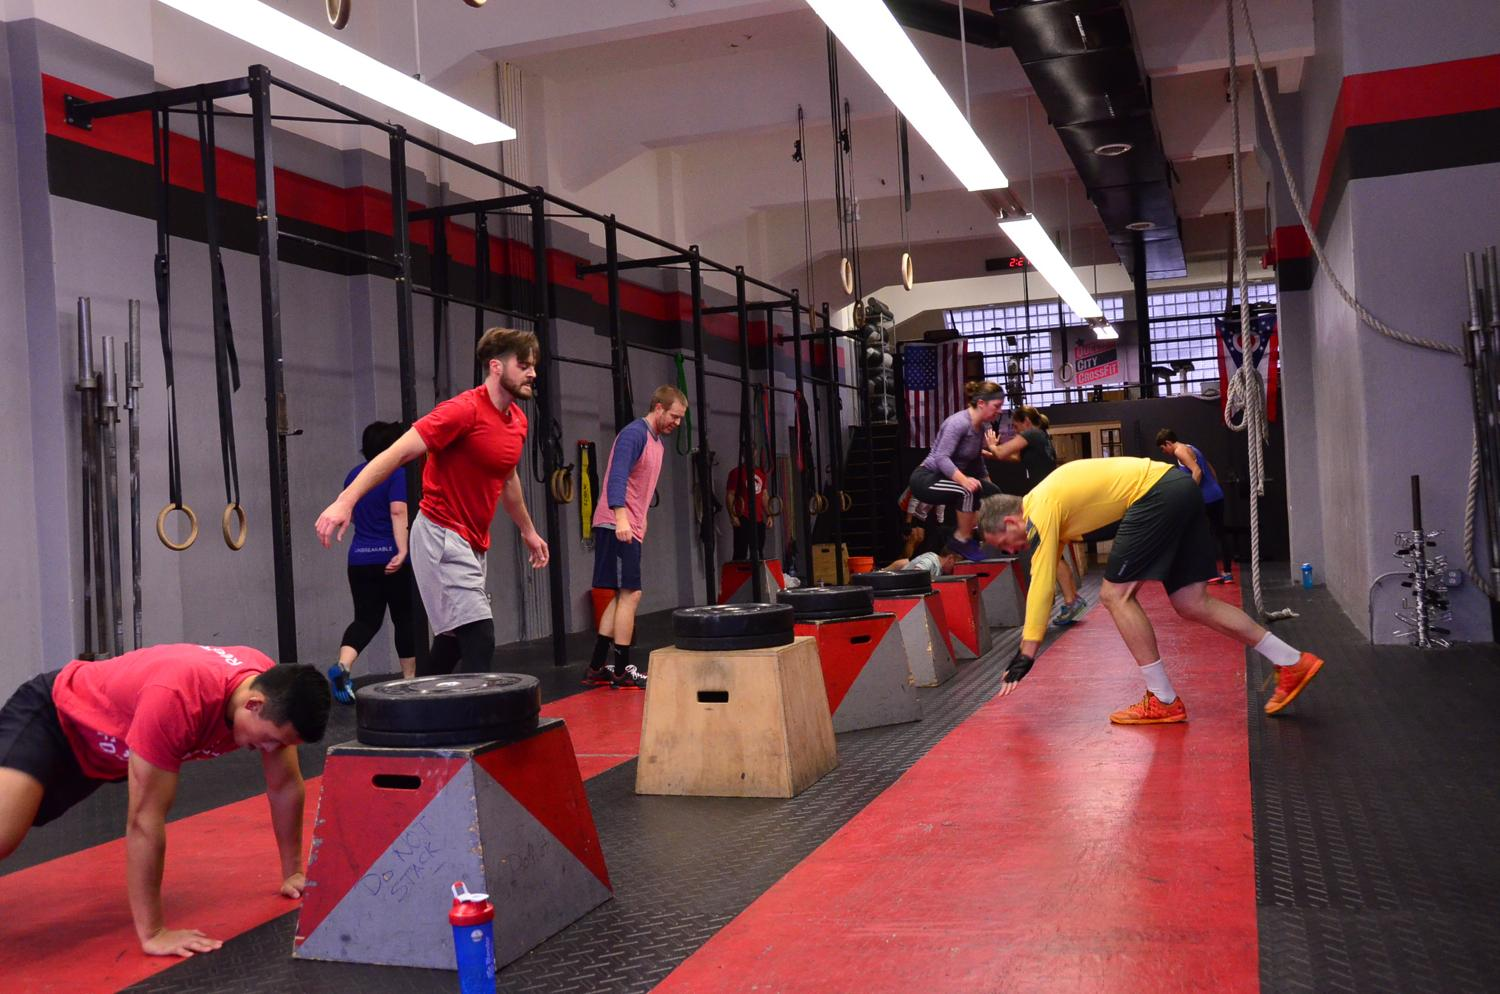 <p>CrossFit has a bit of it all: weight lifting, aerobic activity, calisthenics, and the best part—it's competitive. Hit up Queen City CrossFit to push your limit and become part of the CrossFit community in 2019. ADDRESS: 18 W 7th Street (45202) / Image: Leah Zipperstein // Published: 1.6.19</p>